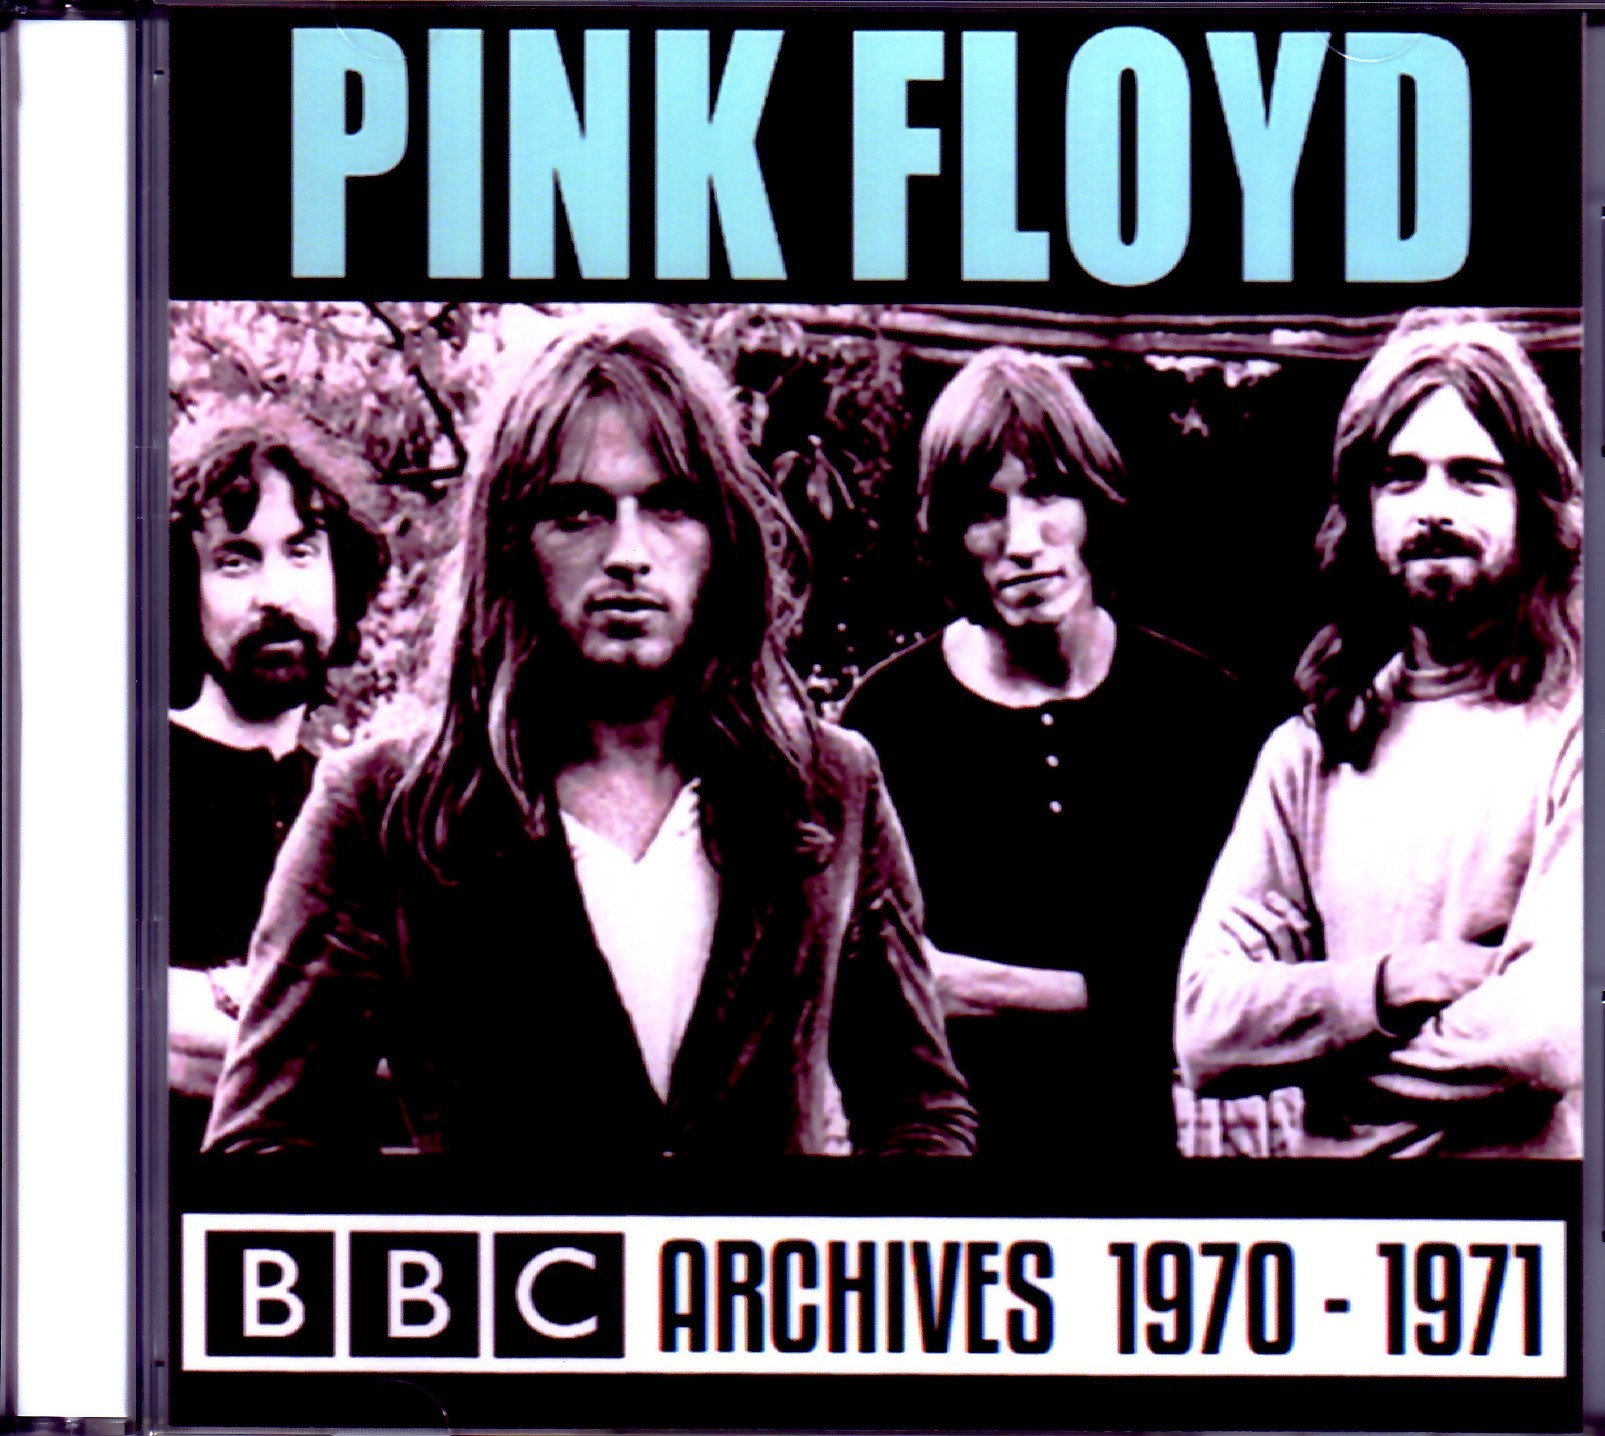 Pink Floyd ピンク・フロイド/London,UK BBC Archives 1970-1971